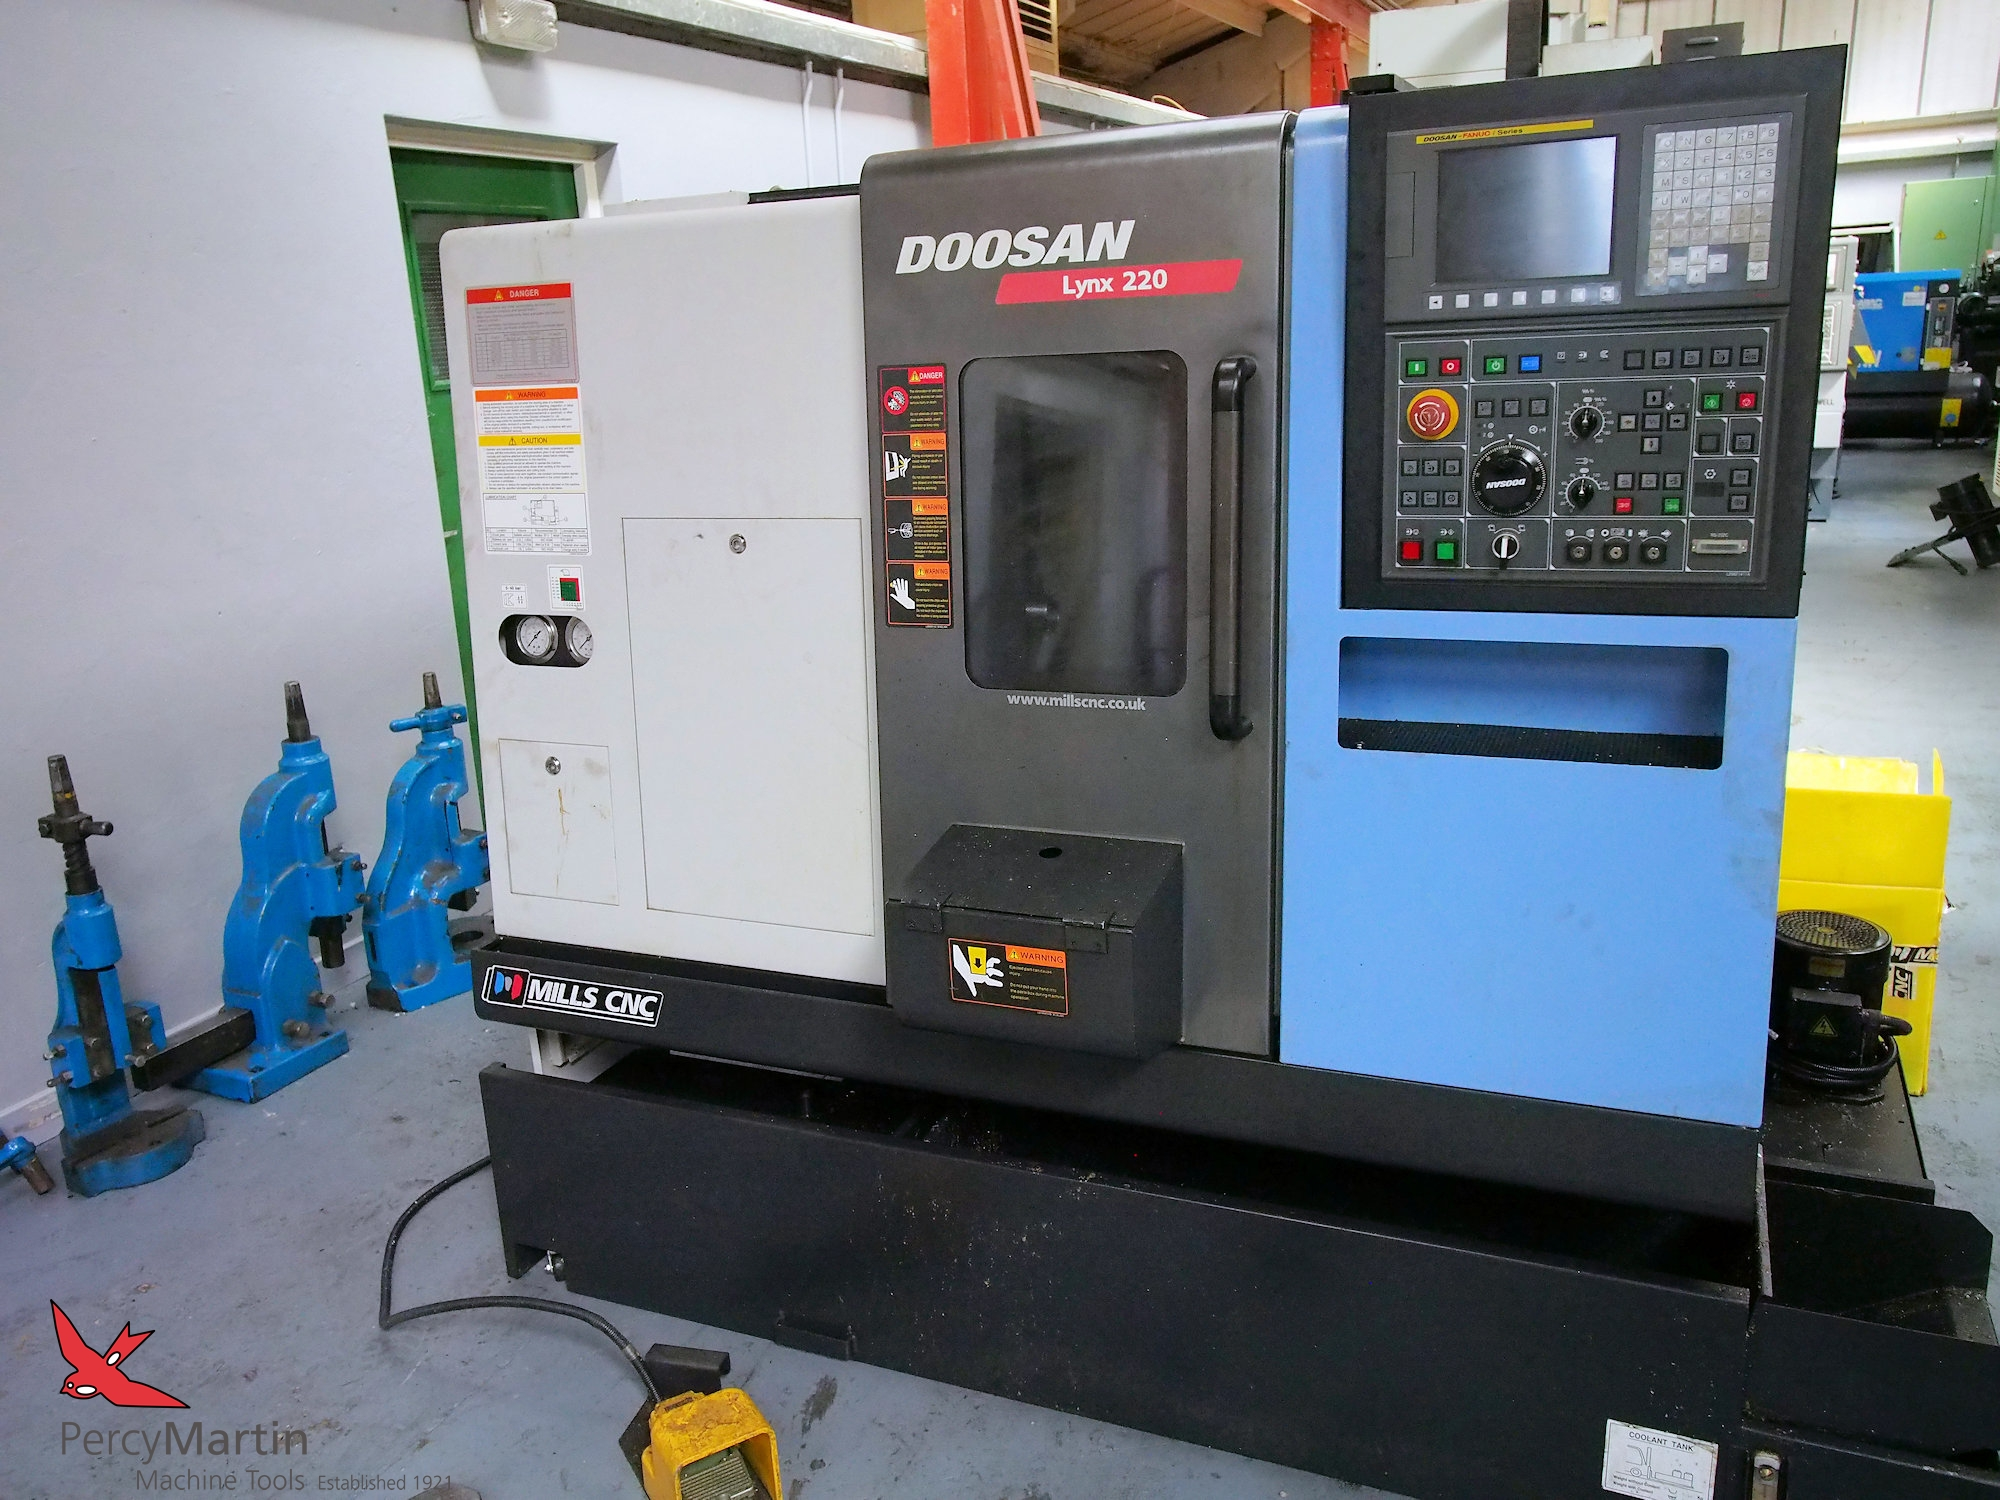 used Doosan Lynx 220B 2012 CNC Lathes for sale | Percy Martin